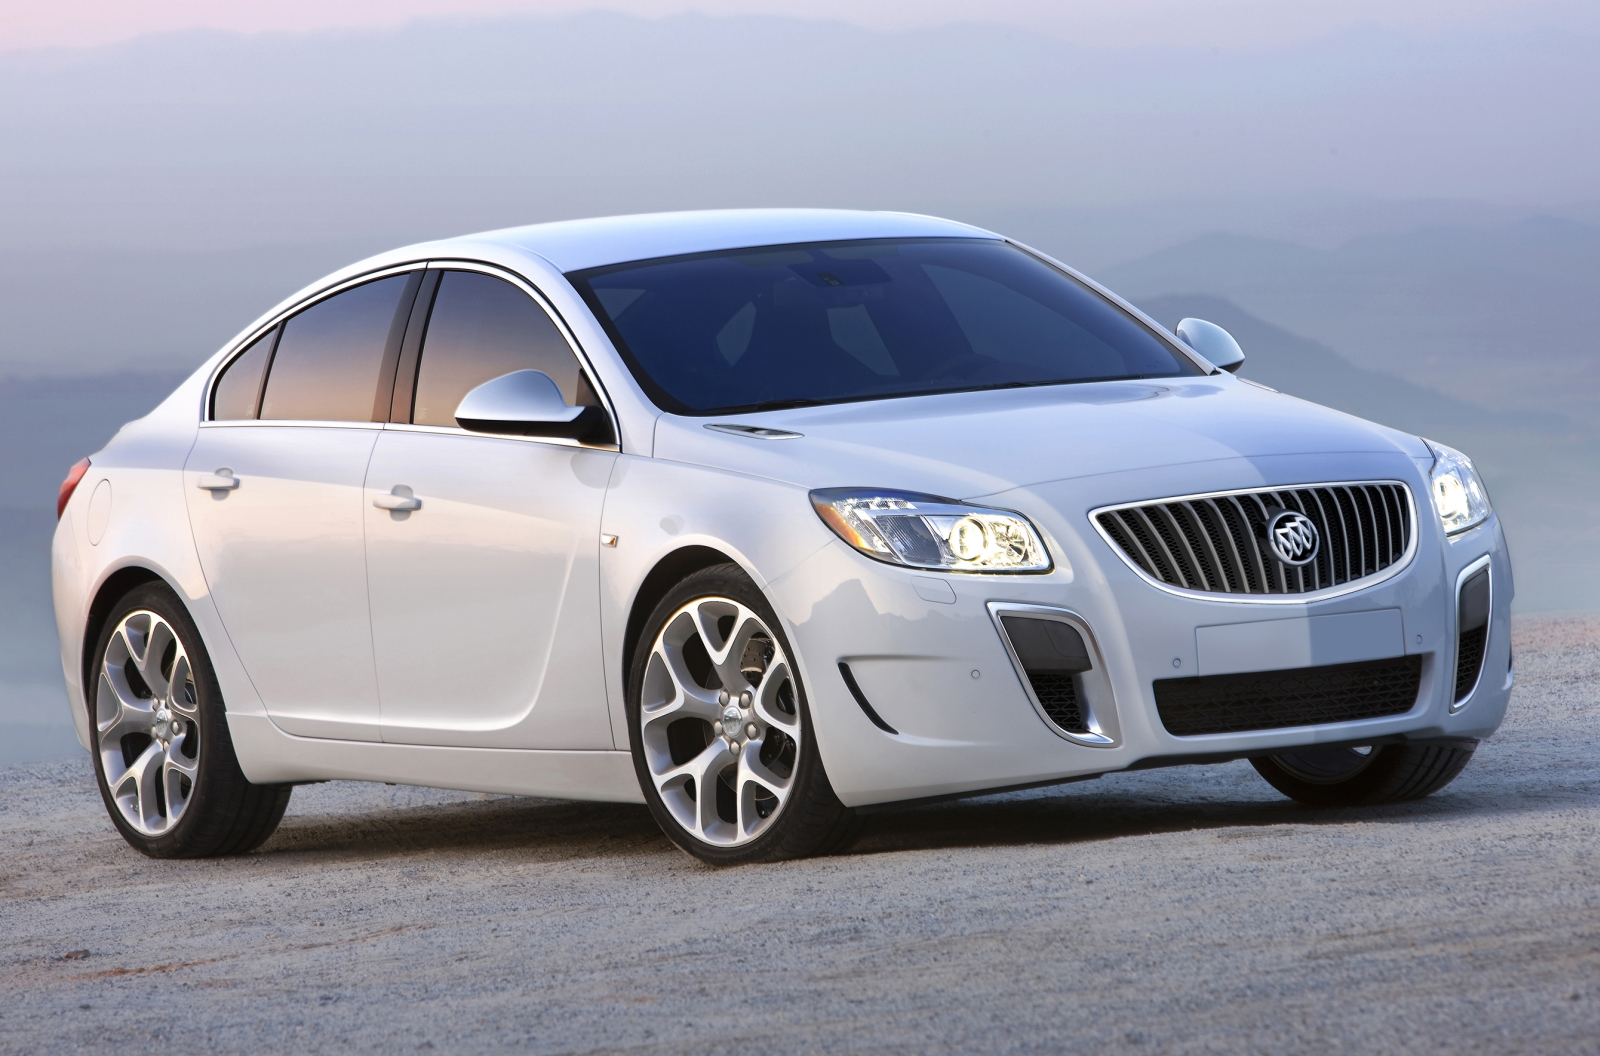 Buick Regal Gs 2012 Reviews Vivid Car